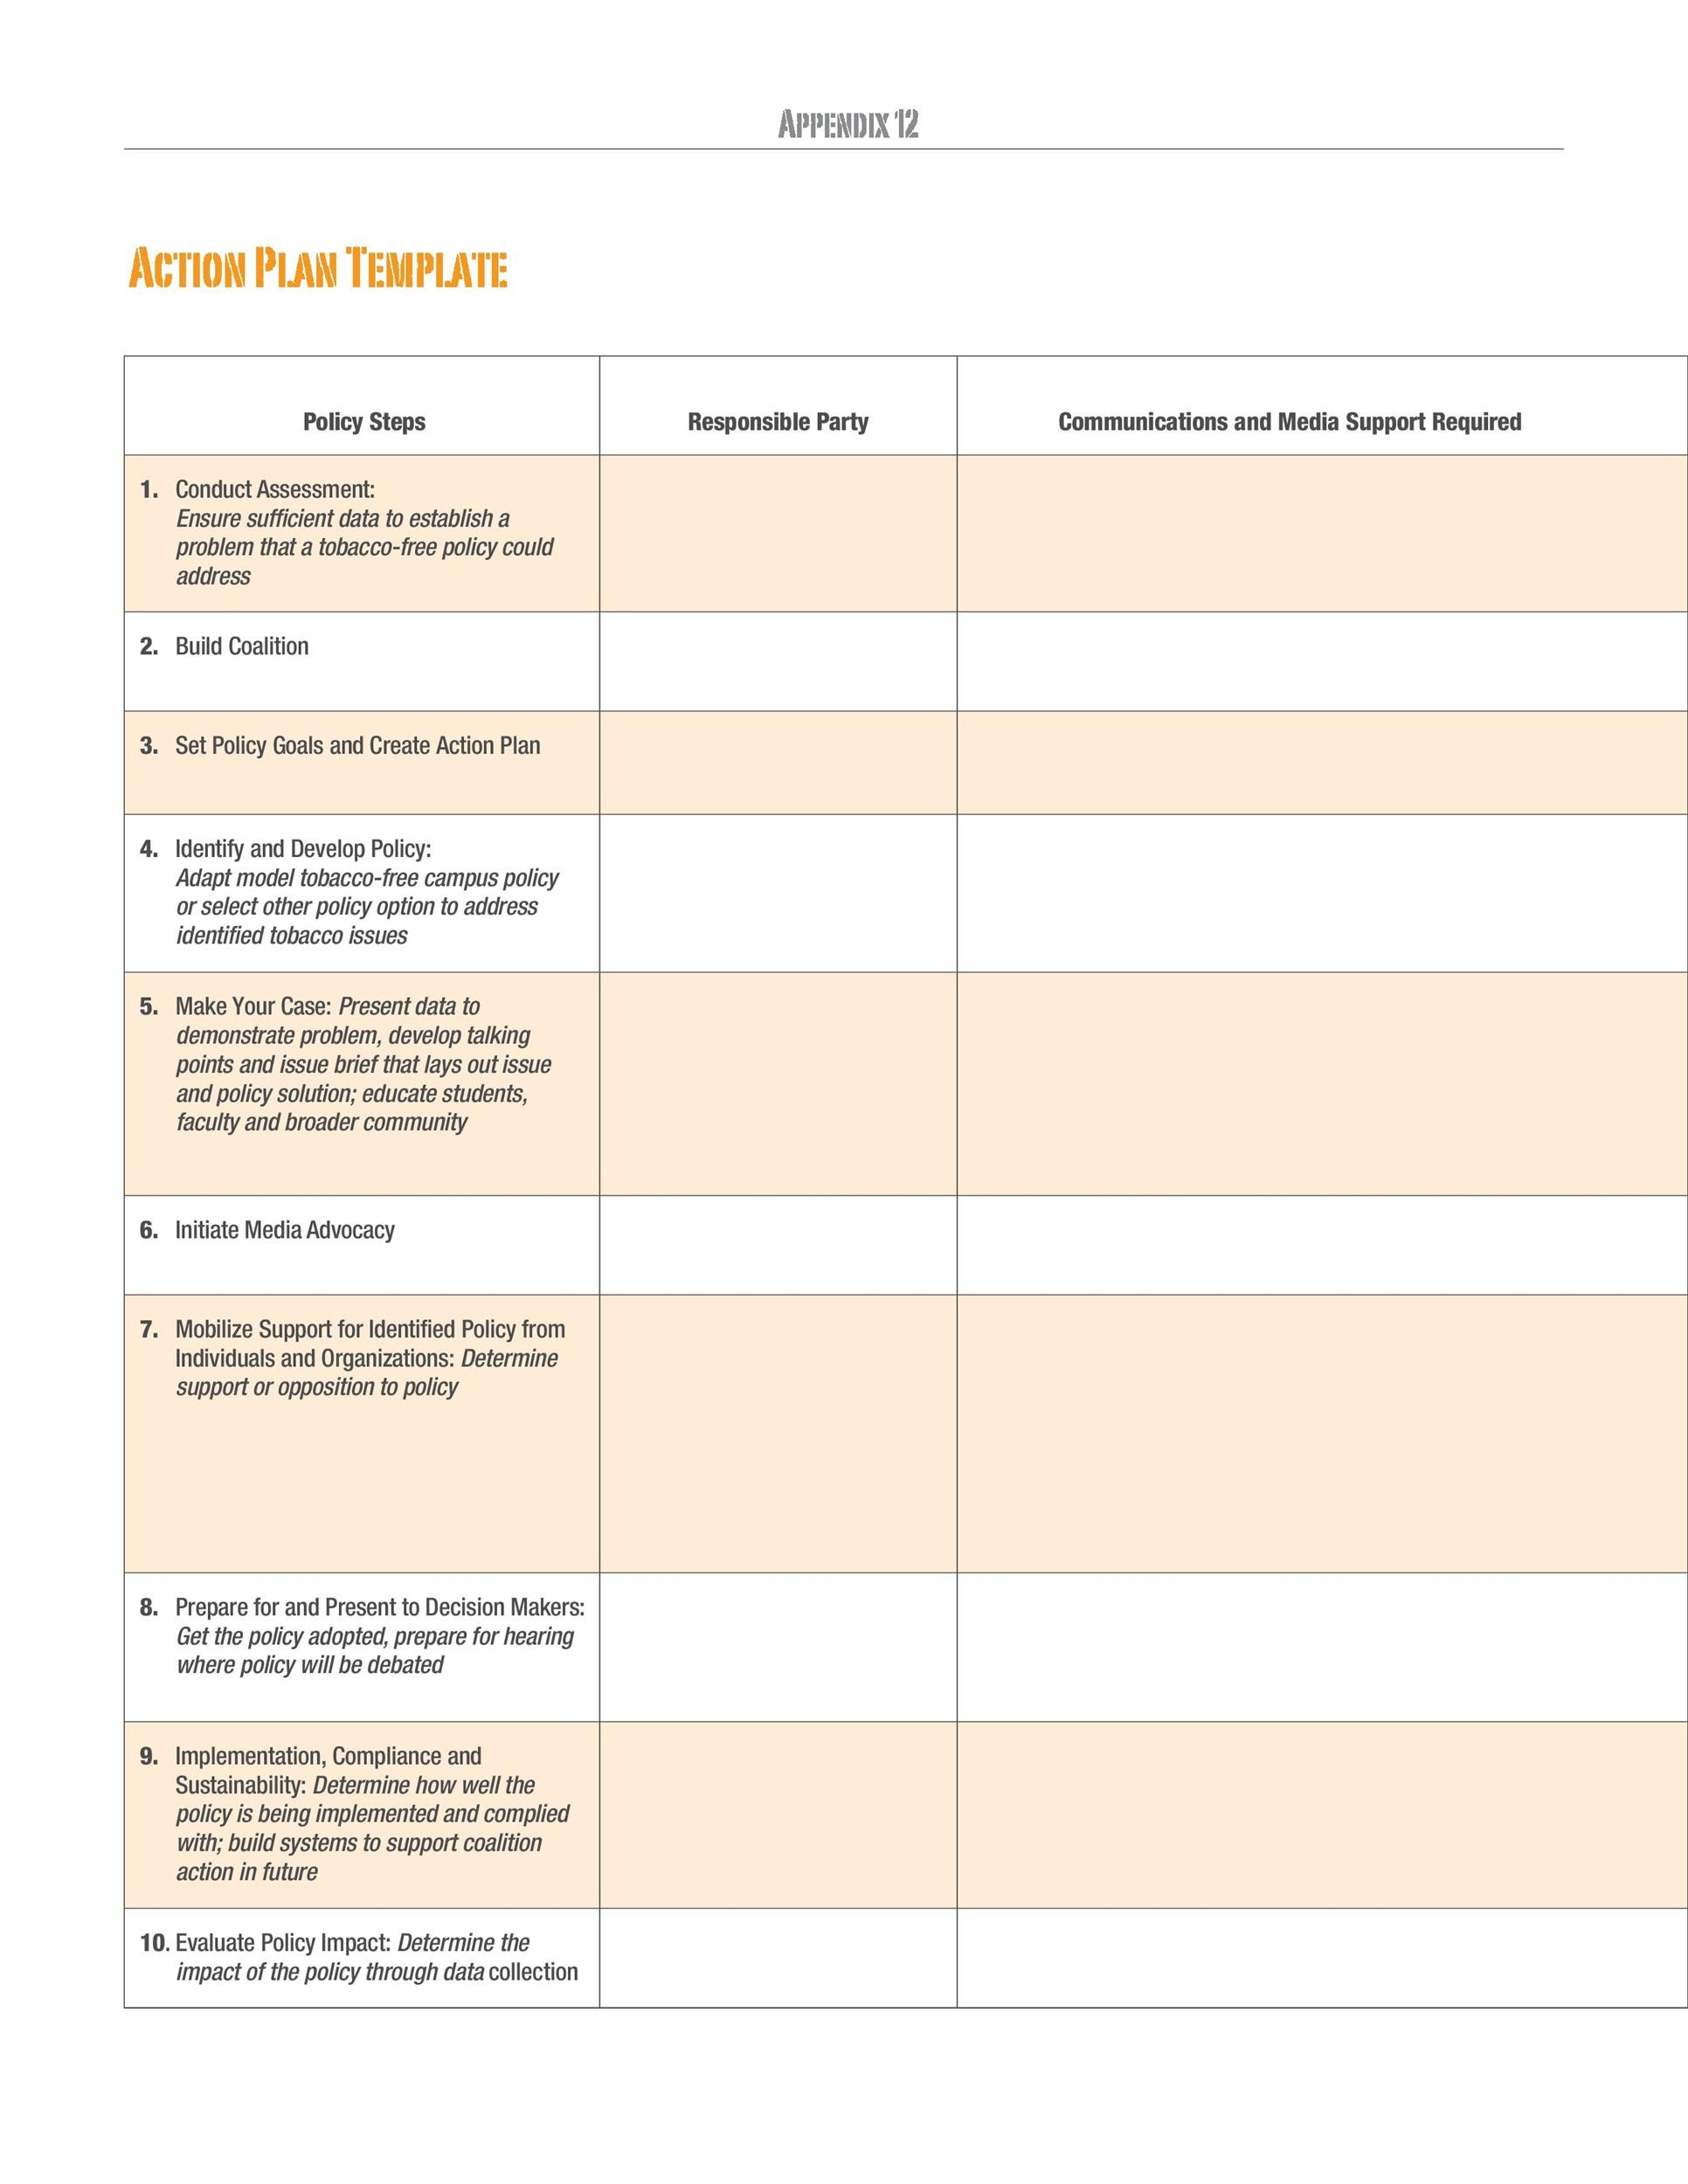 Free Action plan template 23